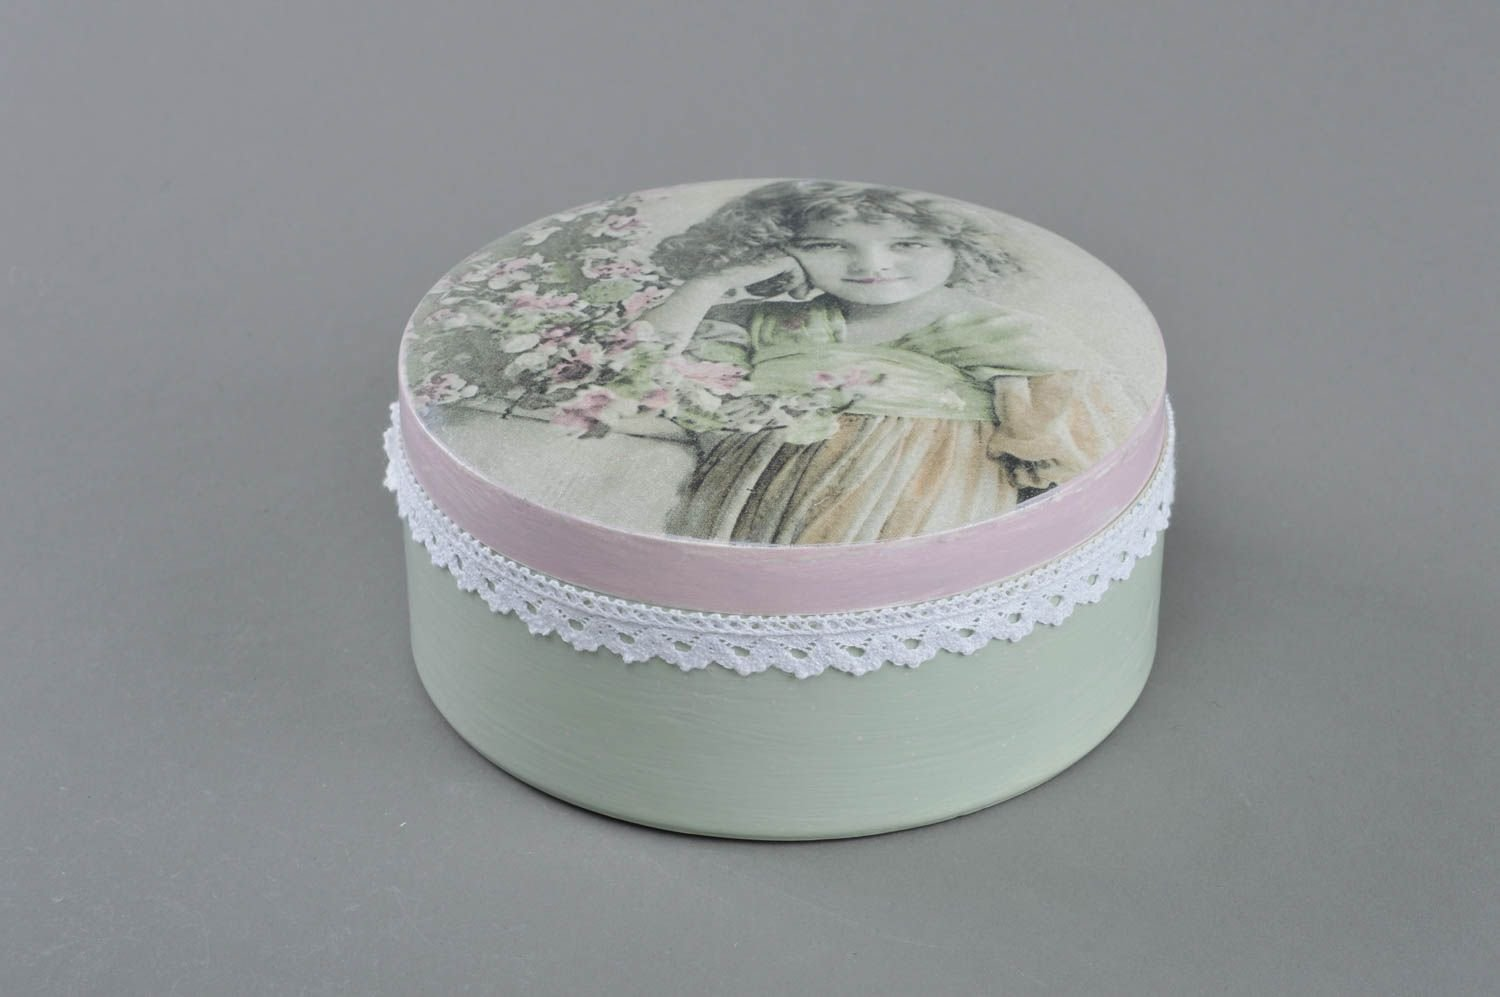 Handmade Designer decoupage Wooden Box of Round Shape Youth by MadeHeart | Buy handmade goods (Image #1)